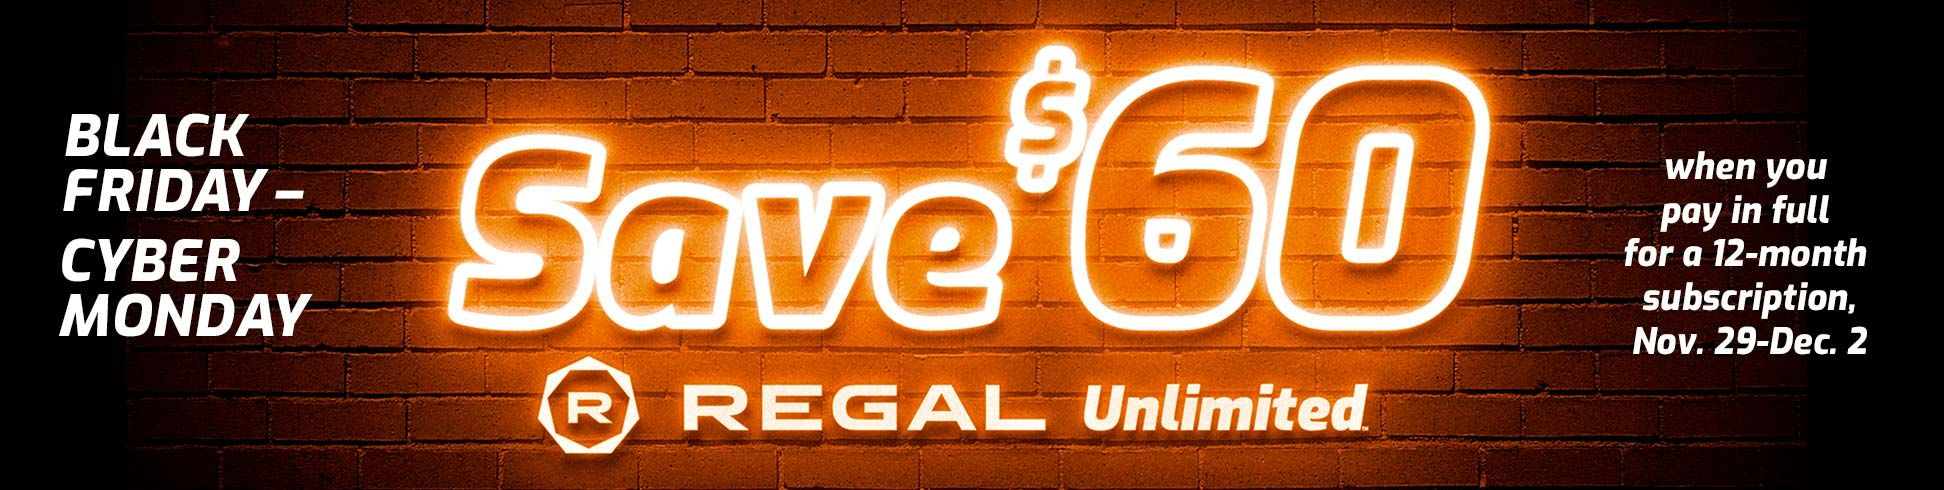 60 Off Regal Unlimited Endless Movie Tickets EXP 12/2